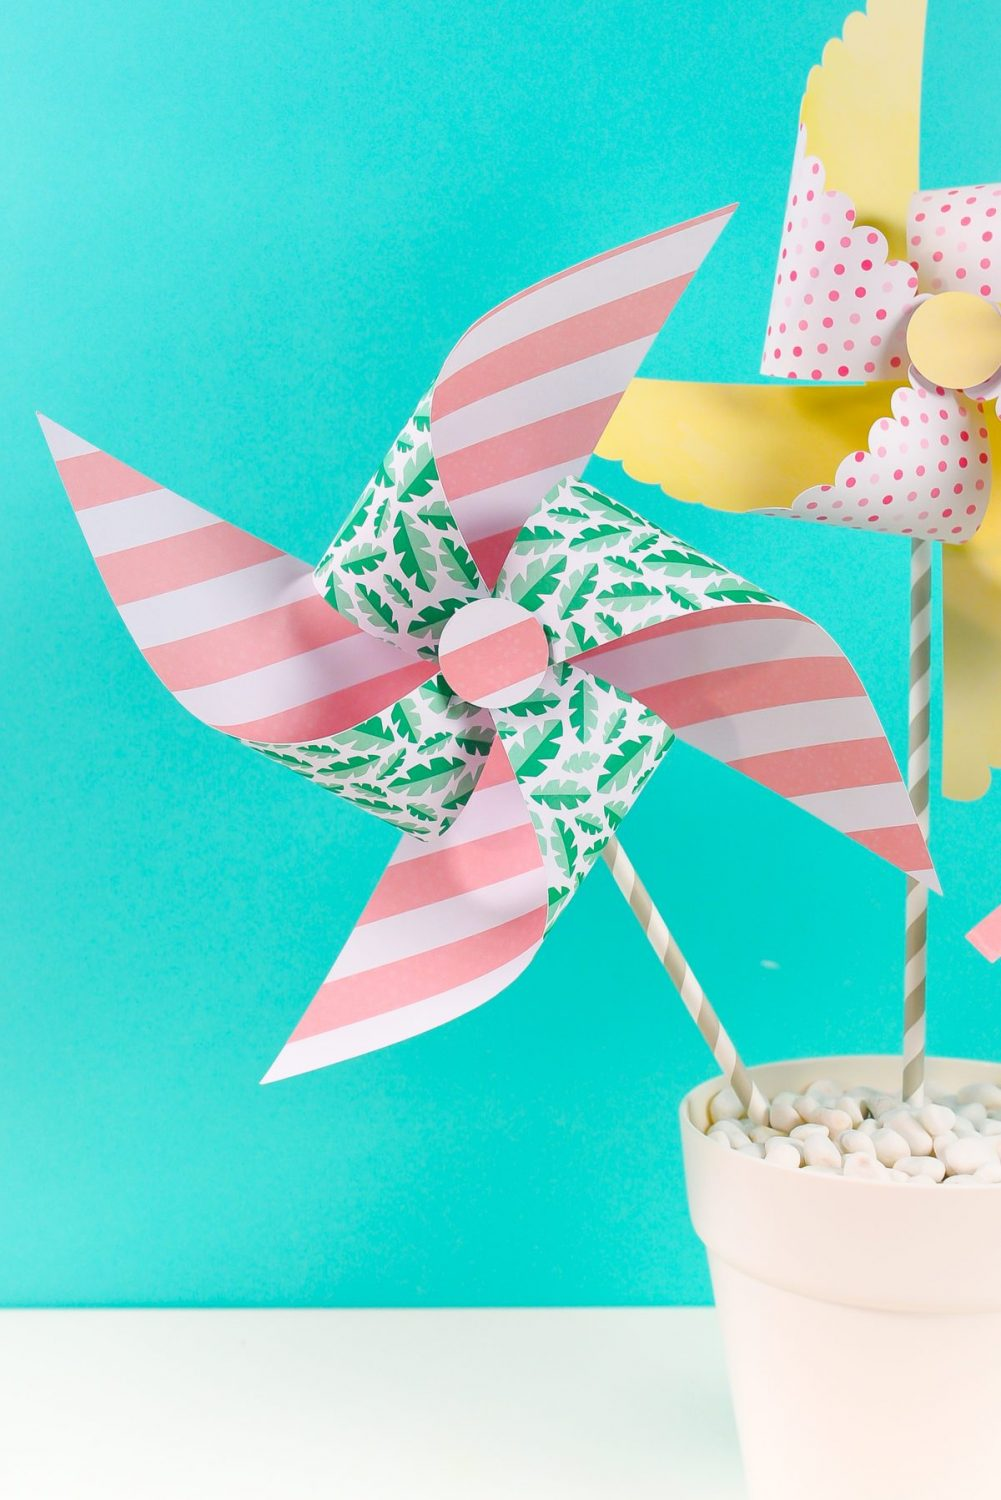 Final paper pinwheels on a teal background